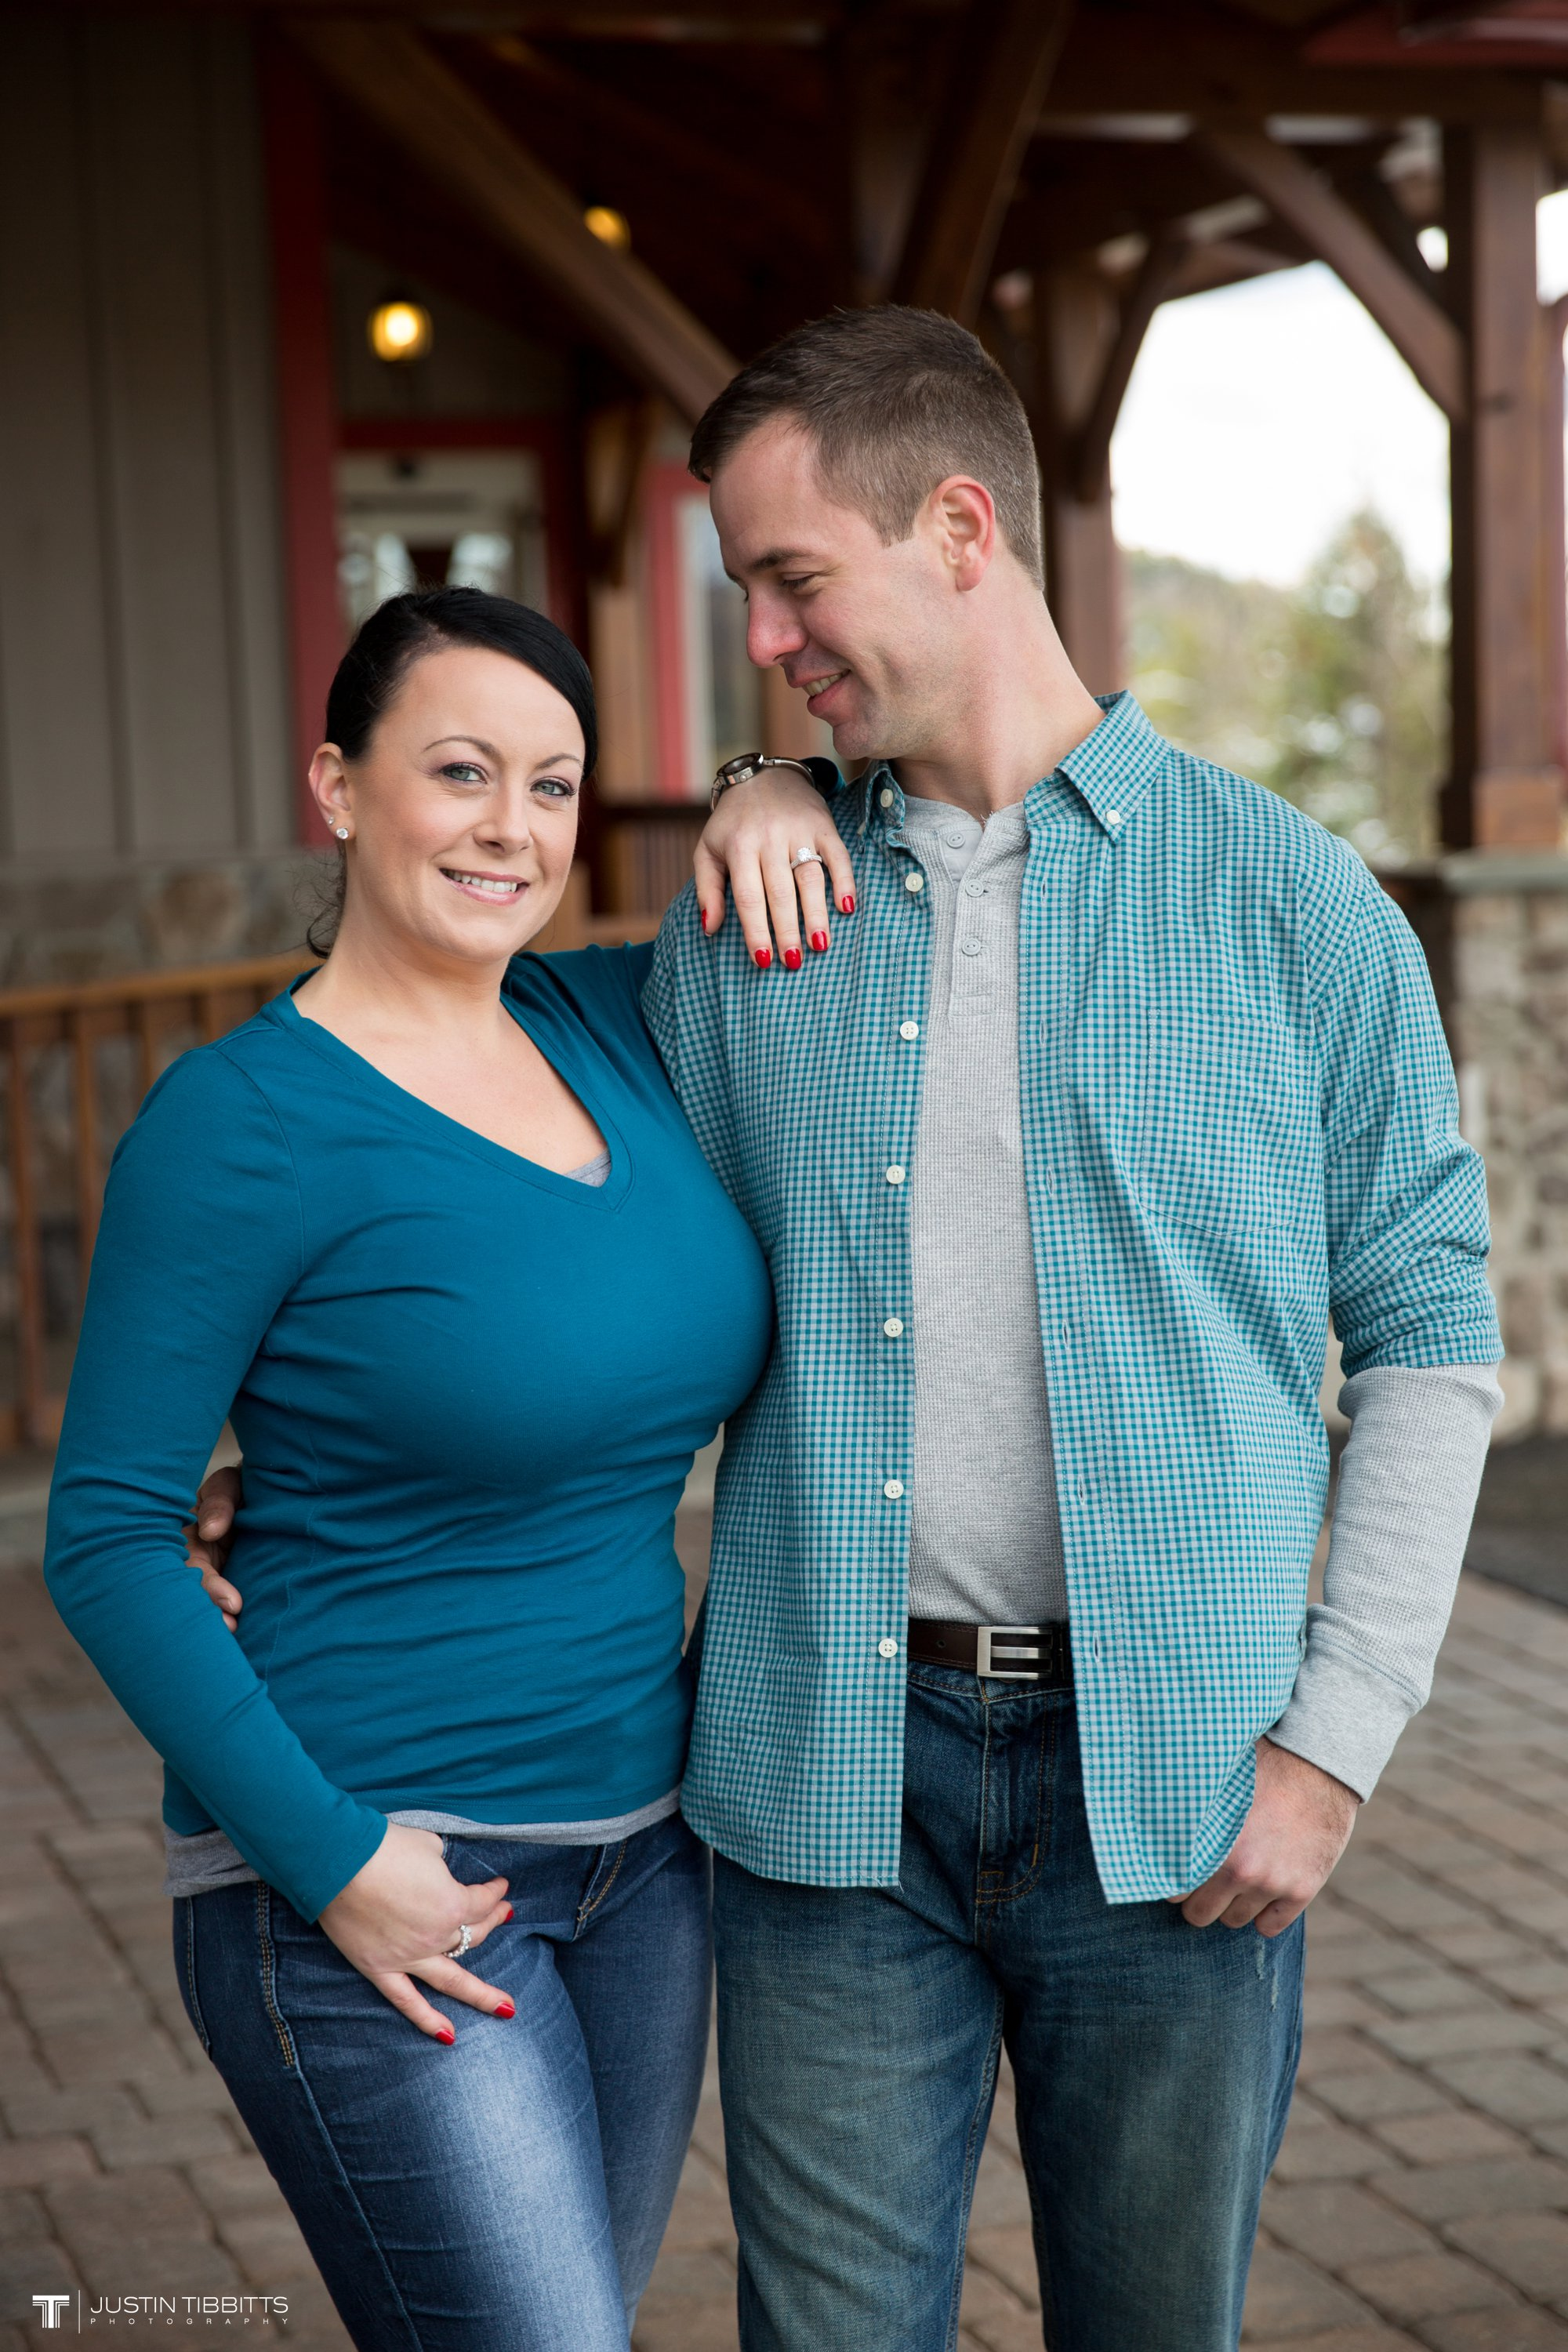 Justin Tibbitts Photography Kristie and Gregs Windham Mountain Resort Engagement Shoot-64